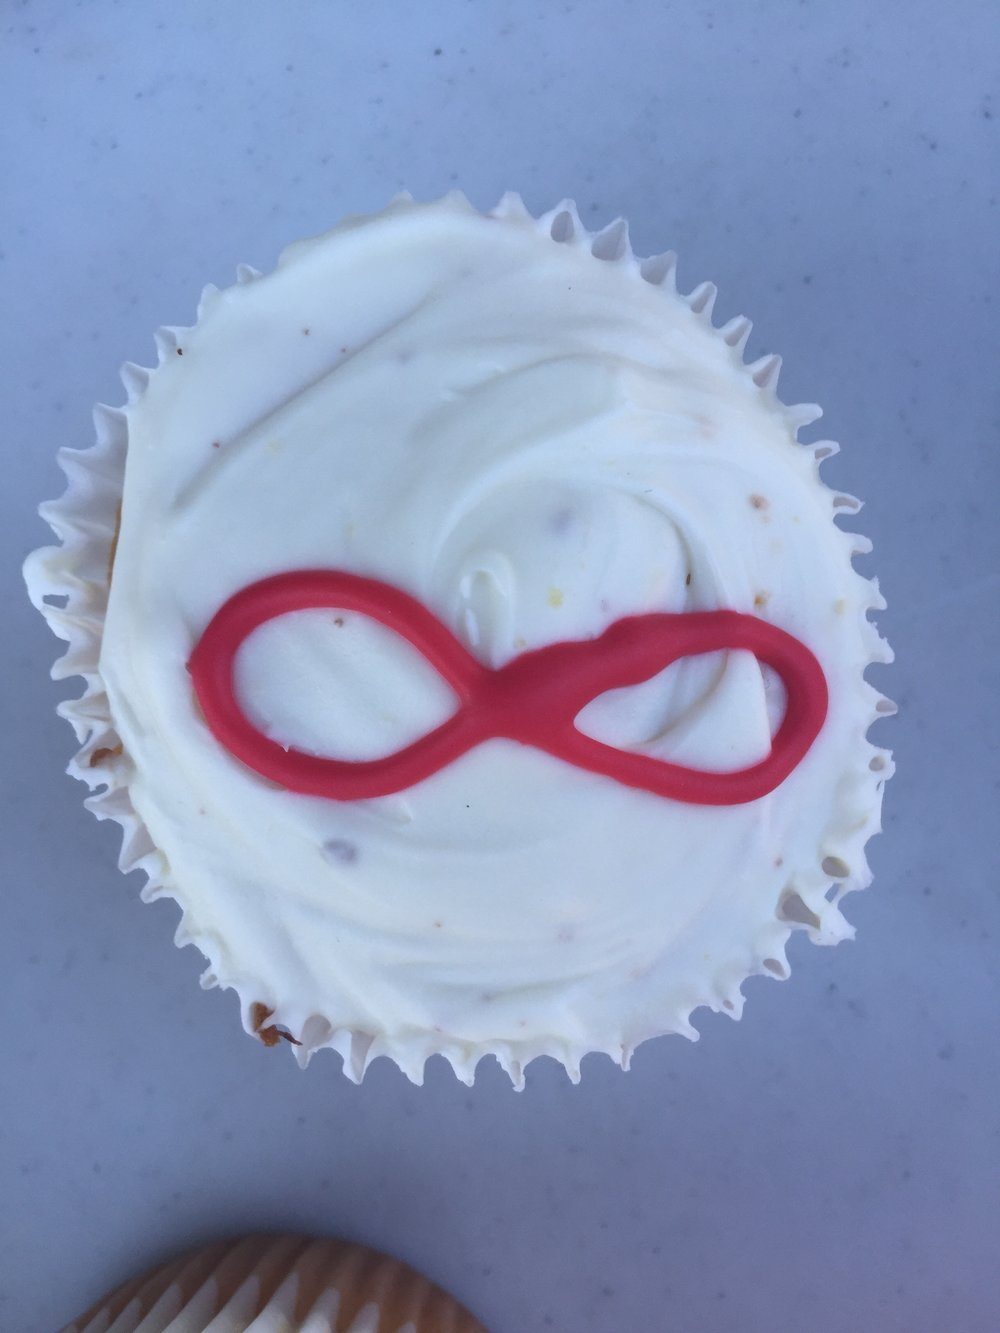 Image description: A cupcake with white frosting and a red infinity symbol in the center.